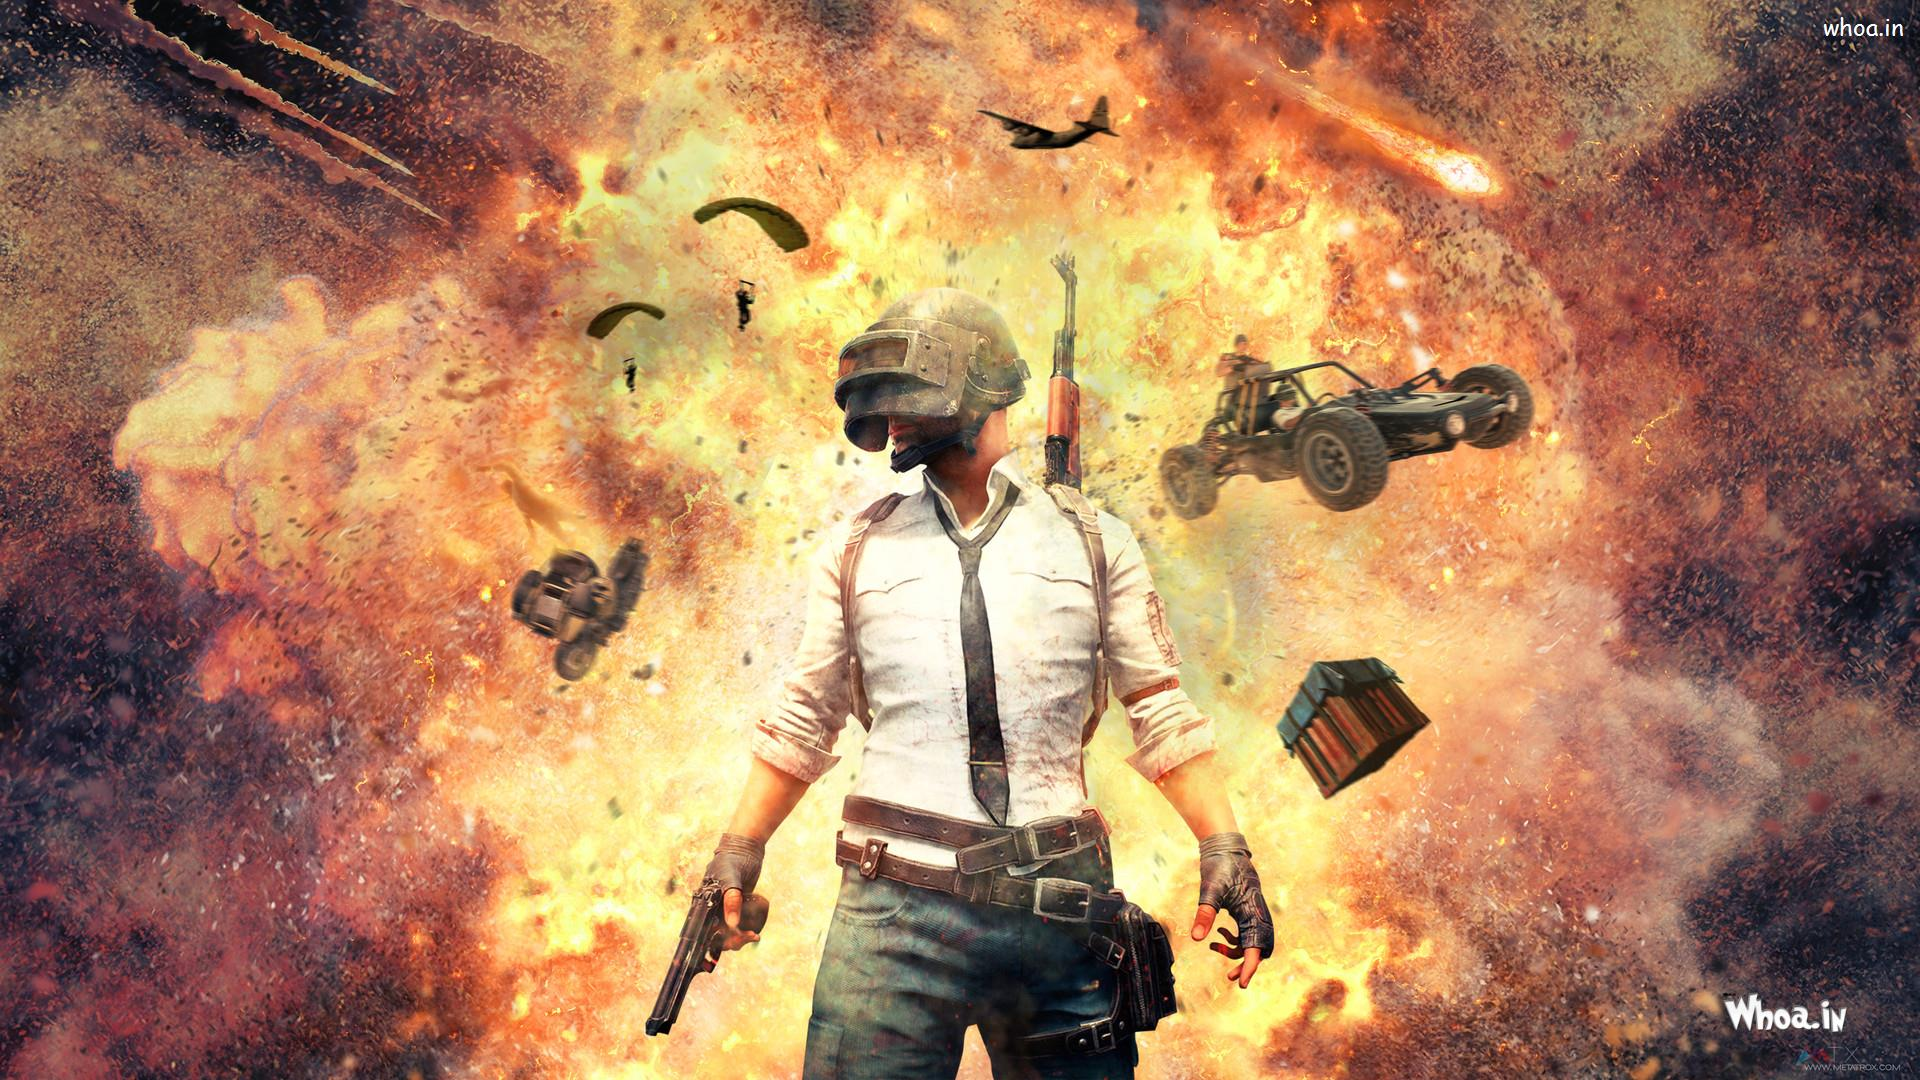 Pubg Game Art Wallpapers For Desktop And Mobiles